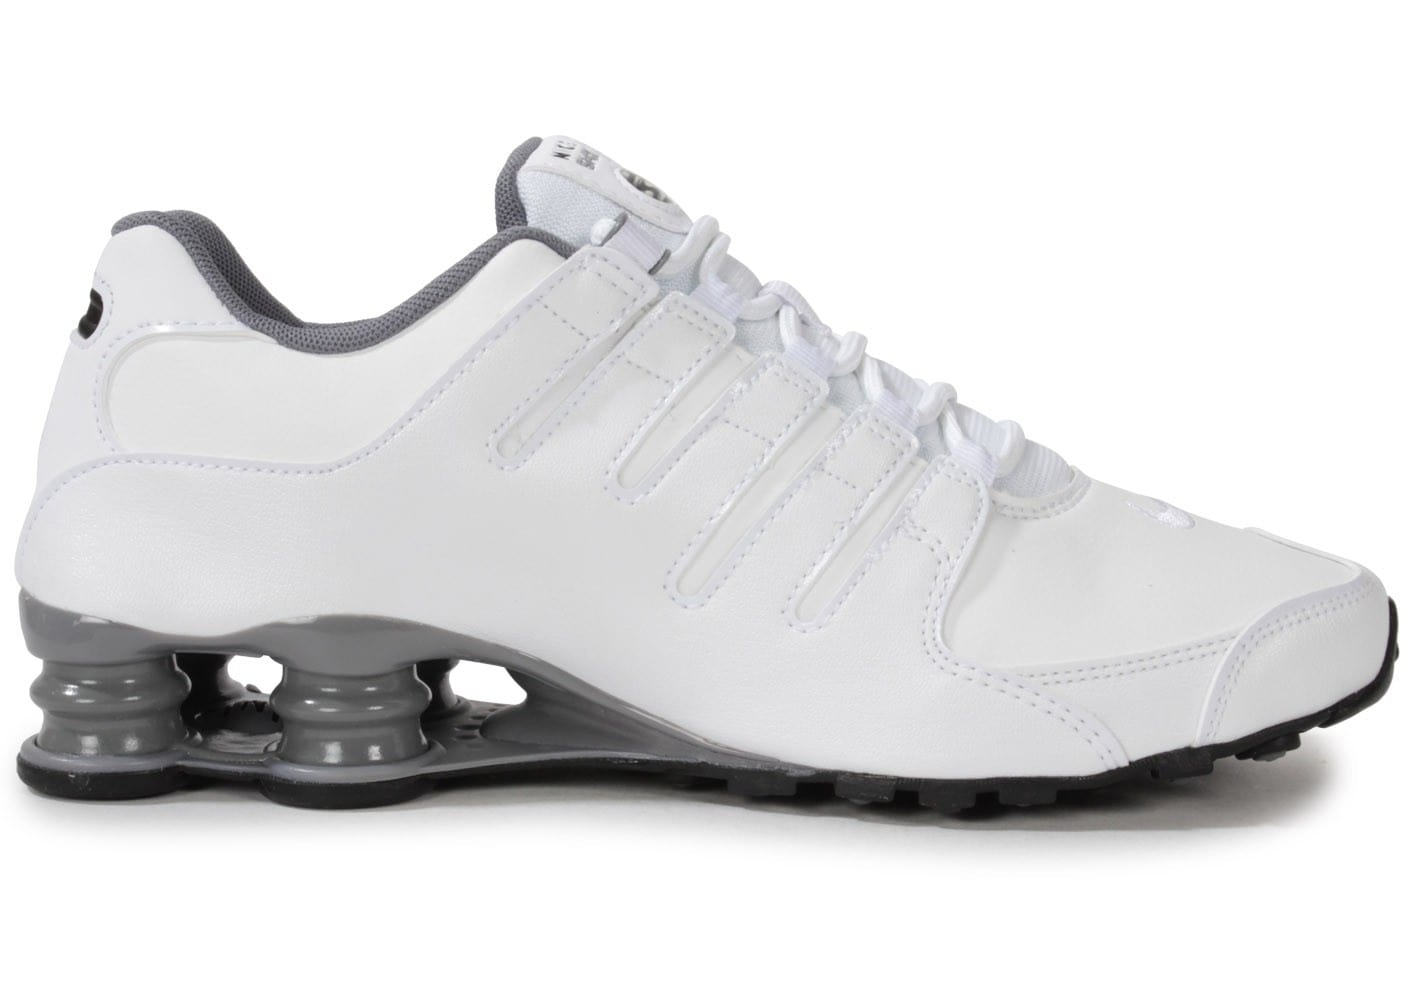 nike shox nz blanche chaussures homme chausport. Black Bedroom Furniture Sets. Home Design Ideas